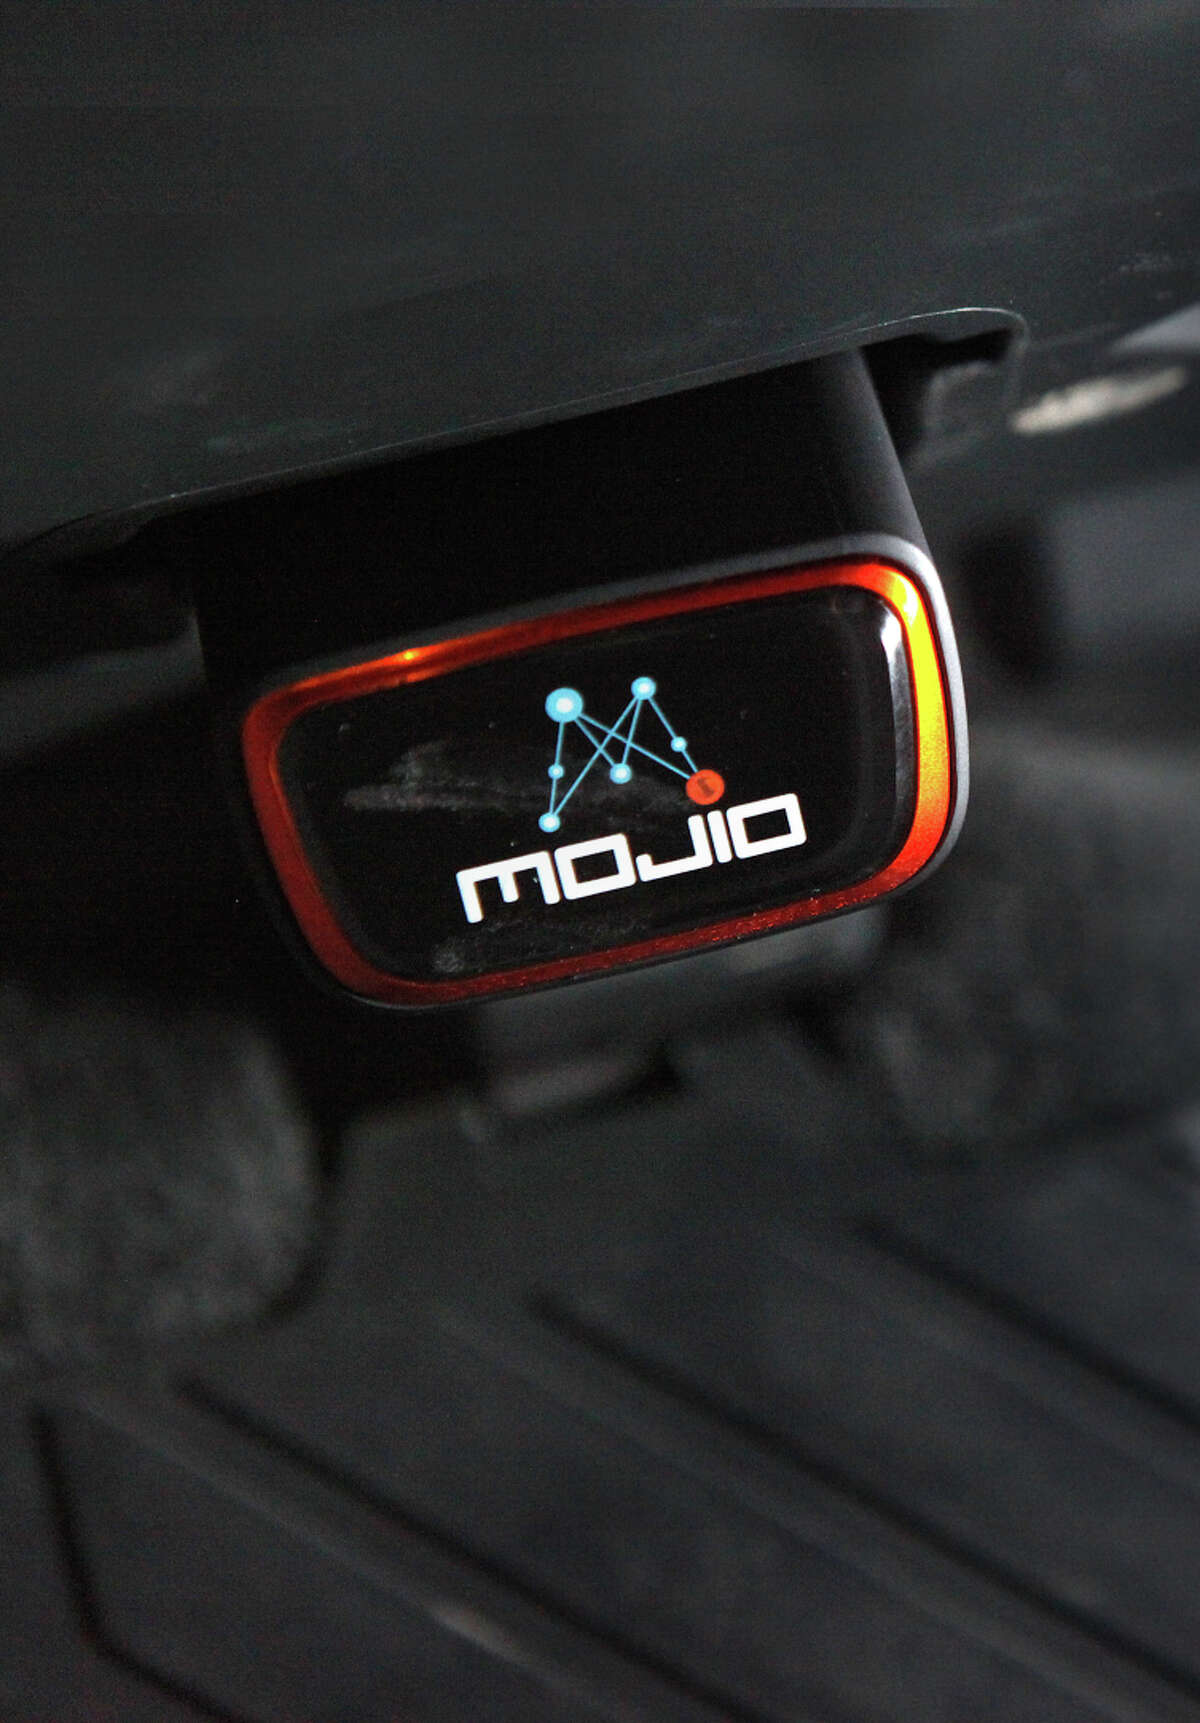 Mojio, which connnects even older cars to a wealth of information, plugs in to the dashboard data port.